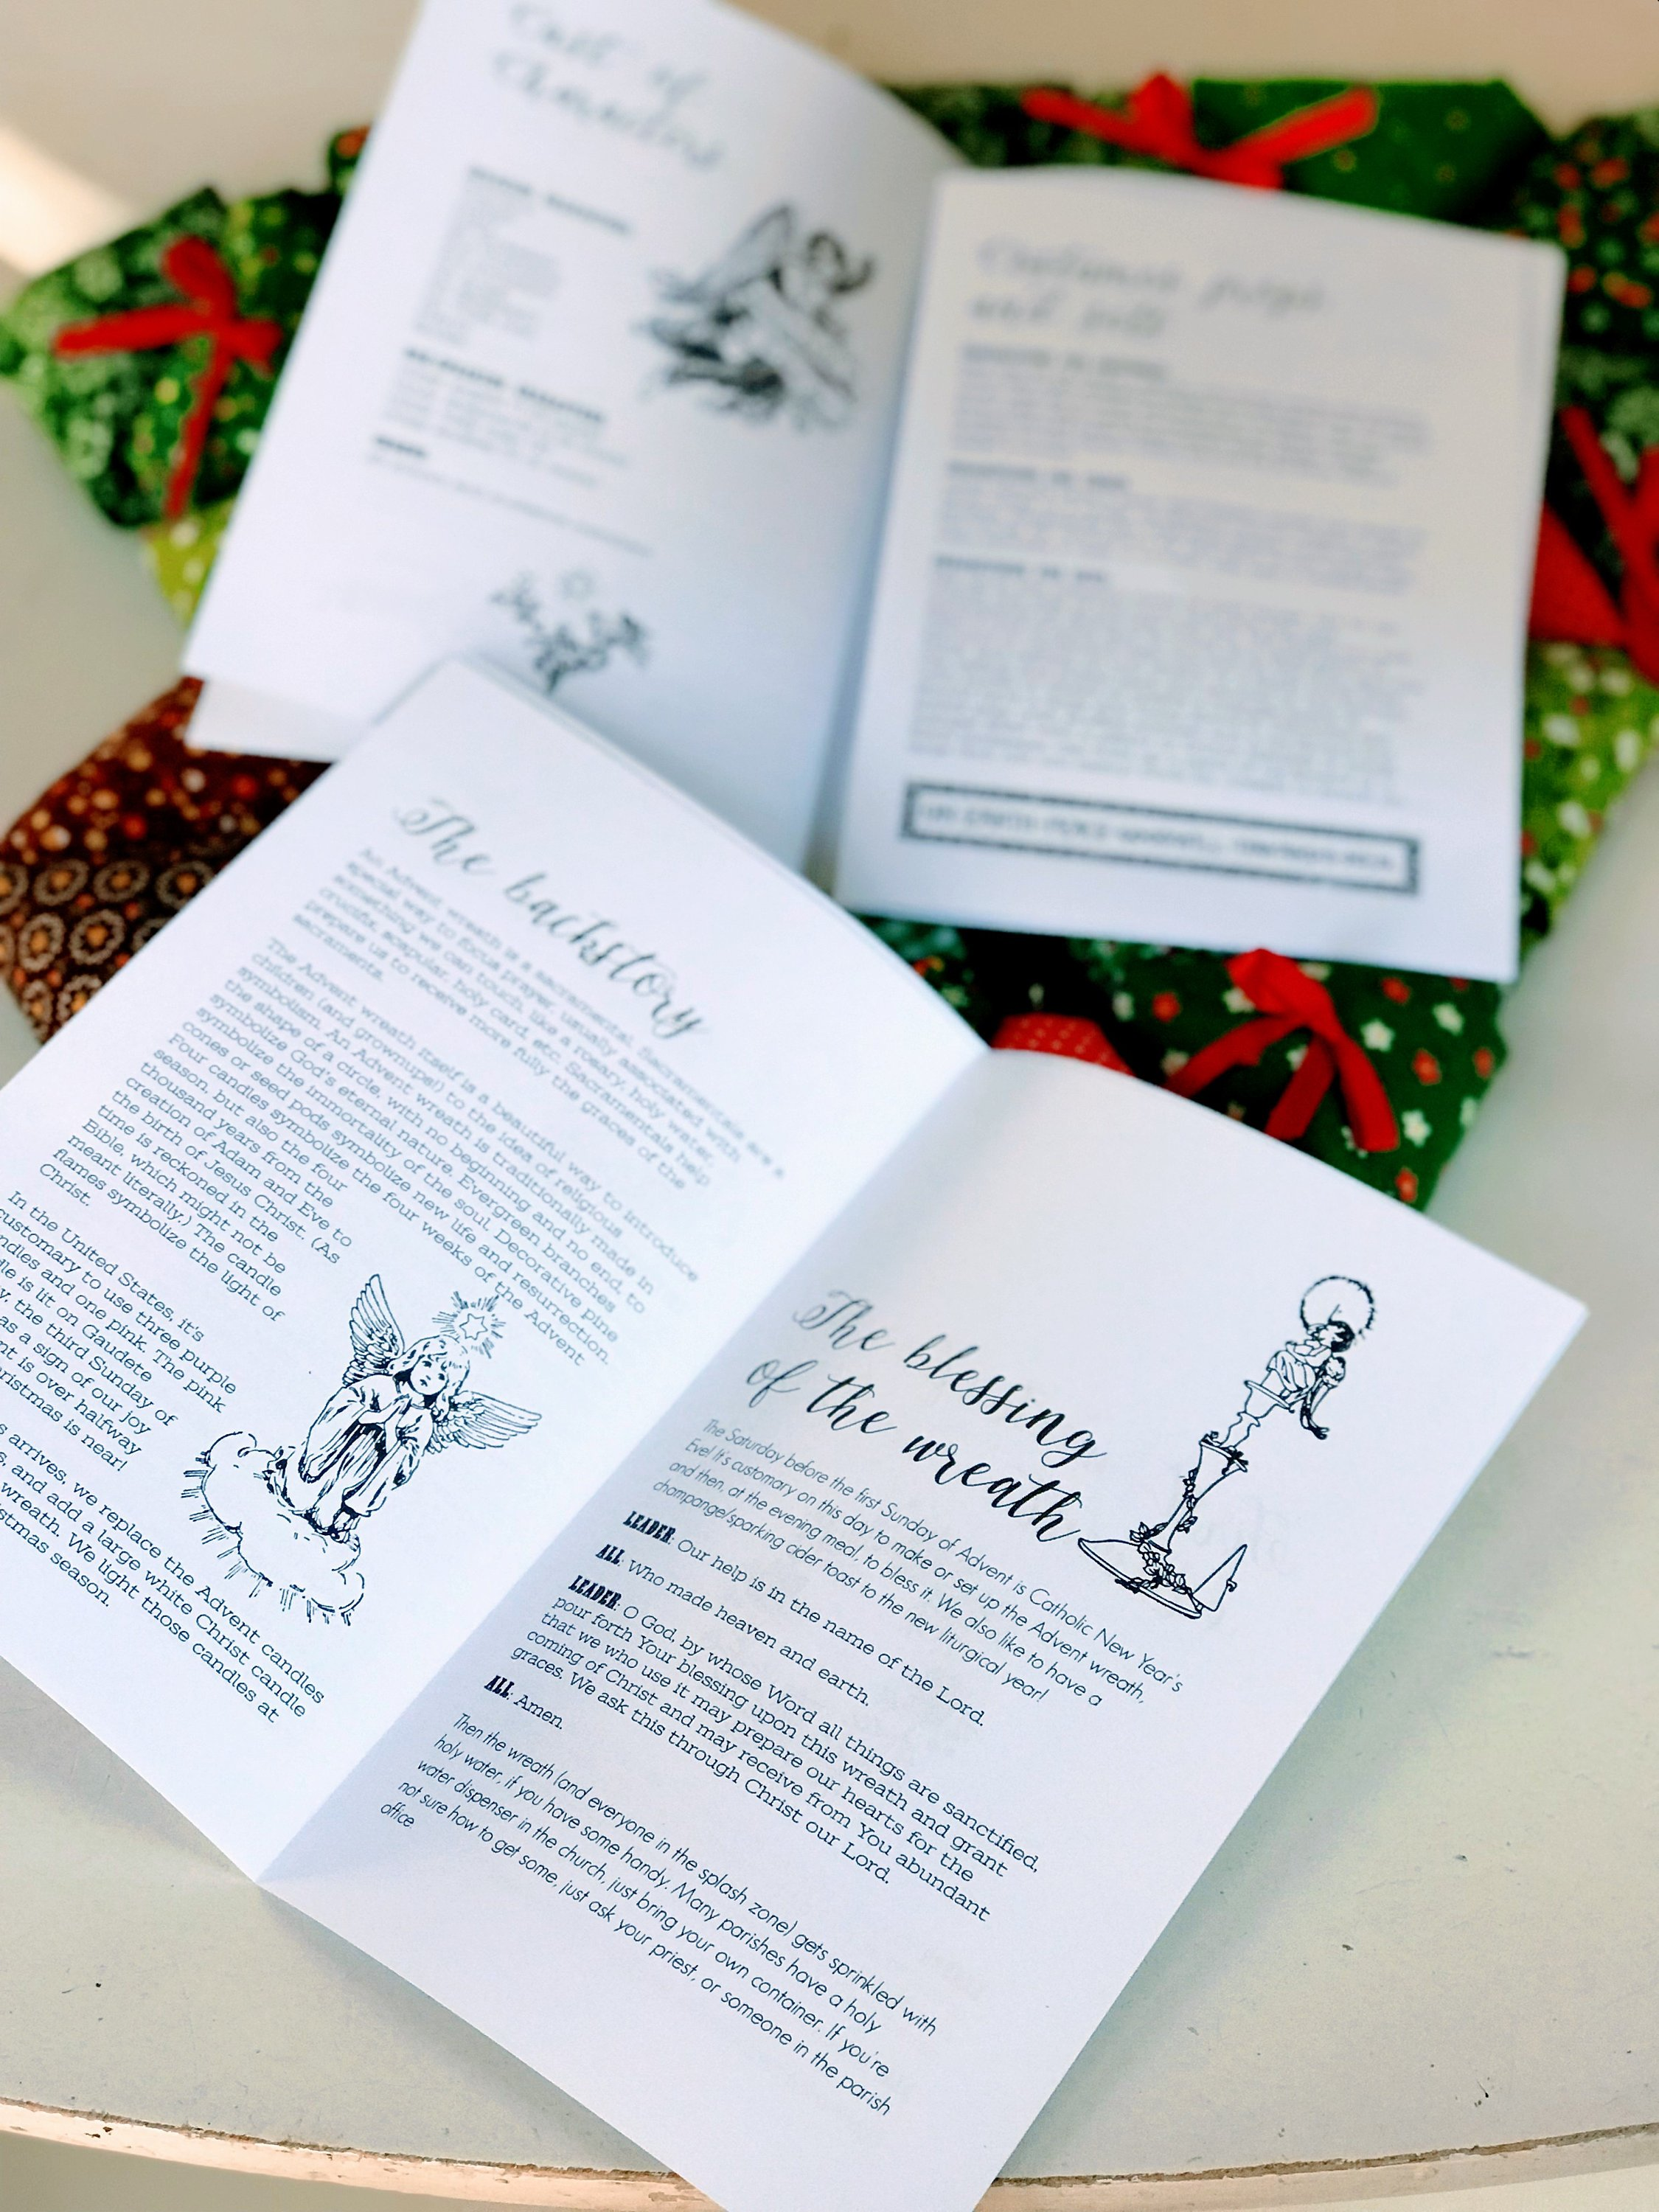 It's just a photo of Effortless Printable Advent Wreath